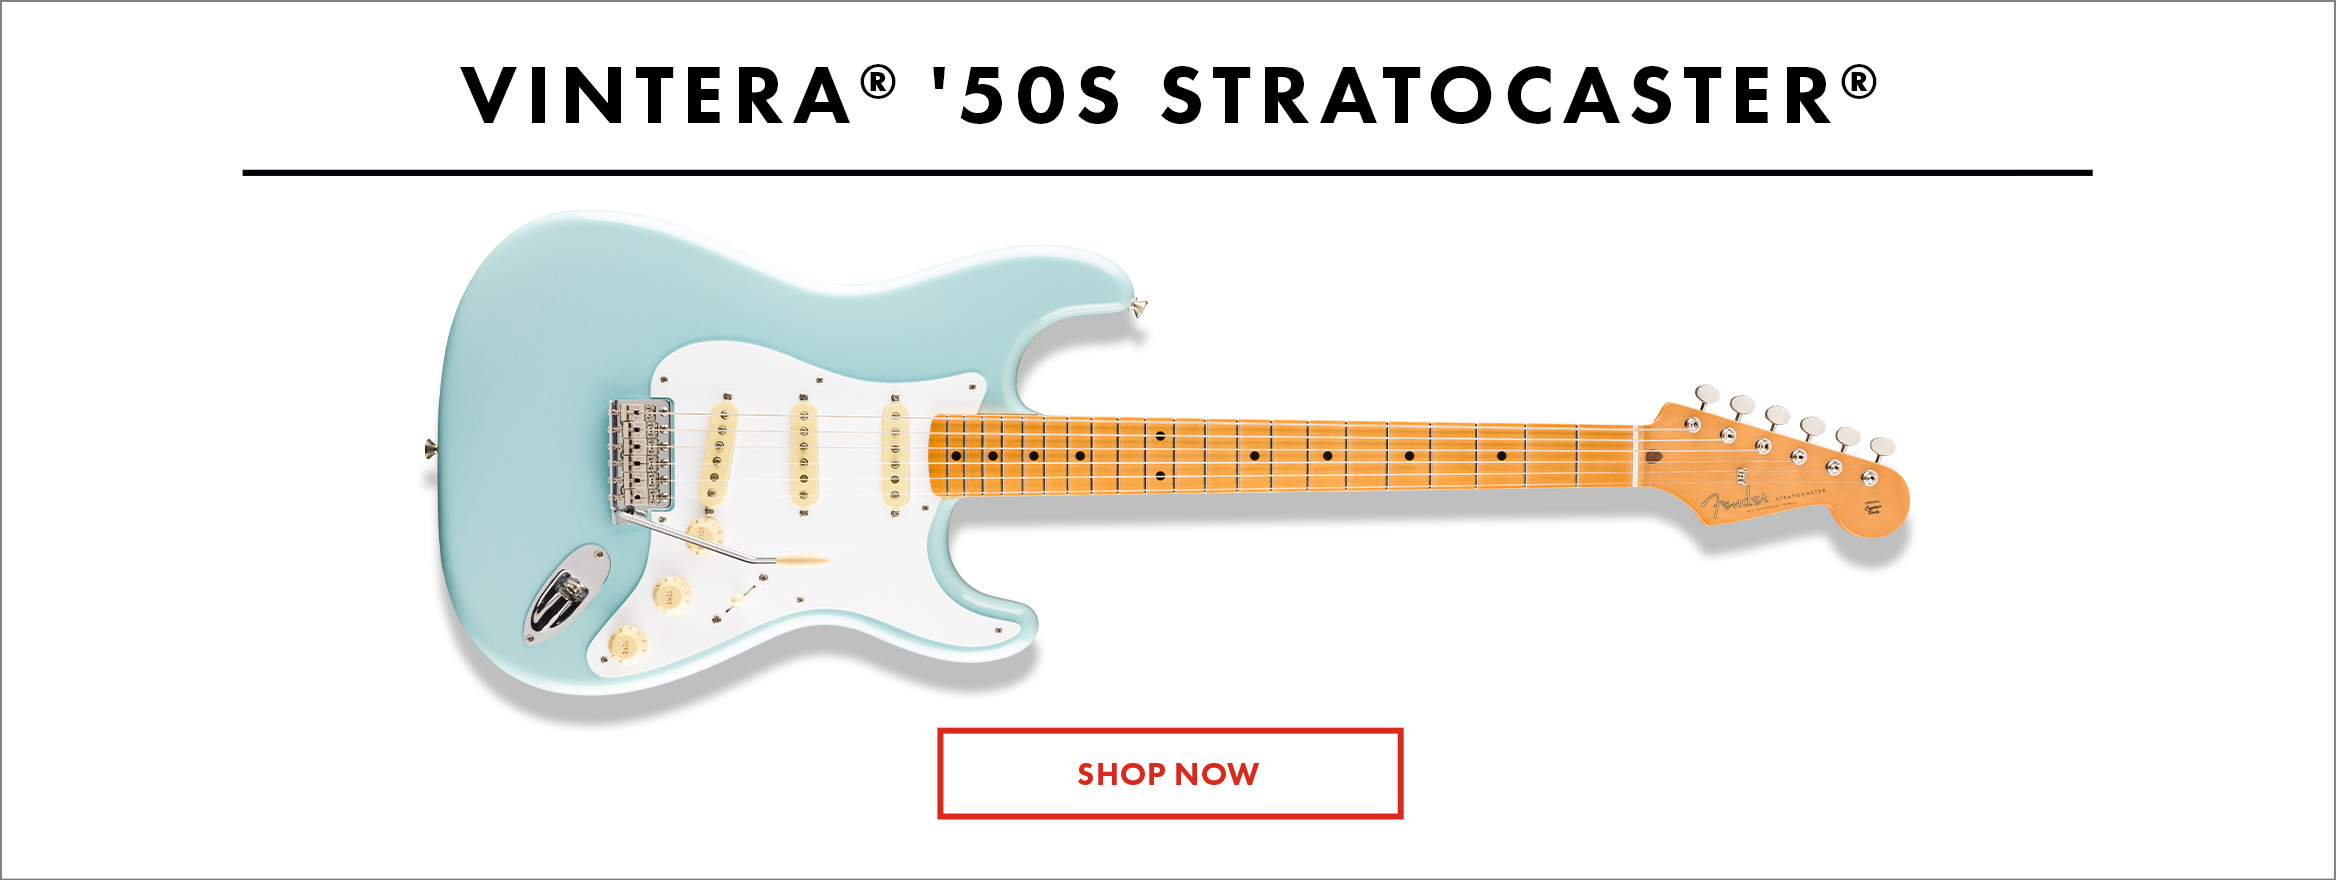 Wed Editorial 0728 20 Images for Stratocaster Article Update Vintera50sStrat